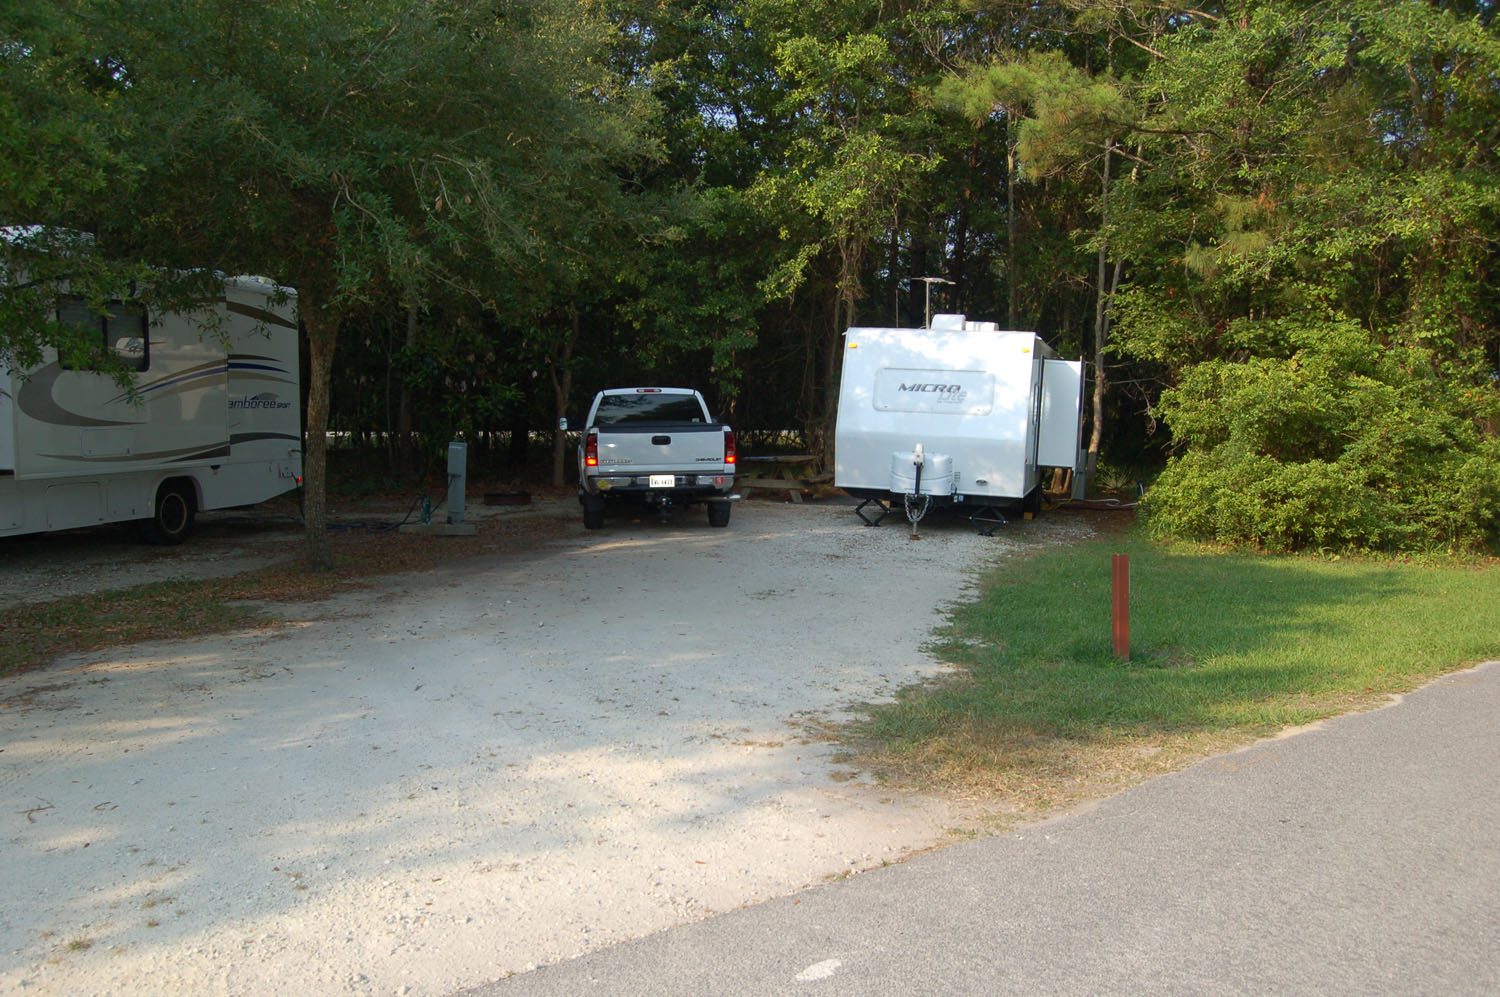 Image of campsite #68 at the Campground at James Island County Park